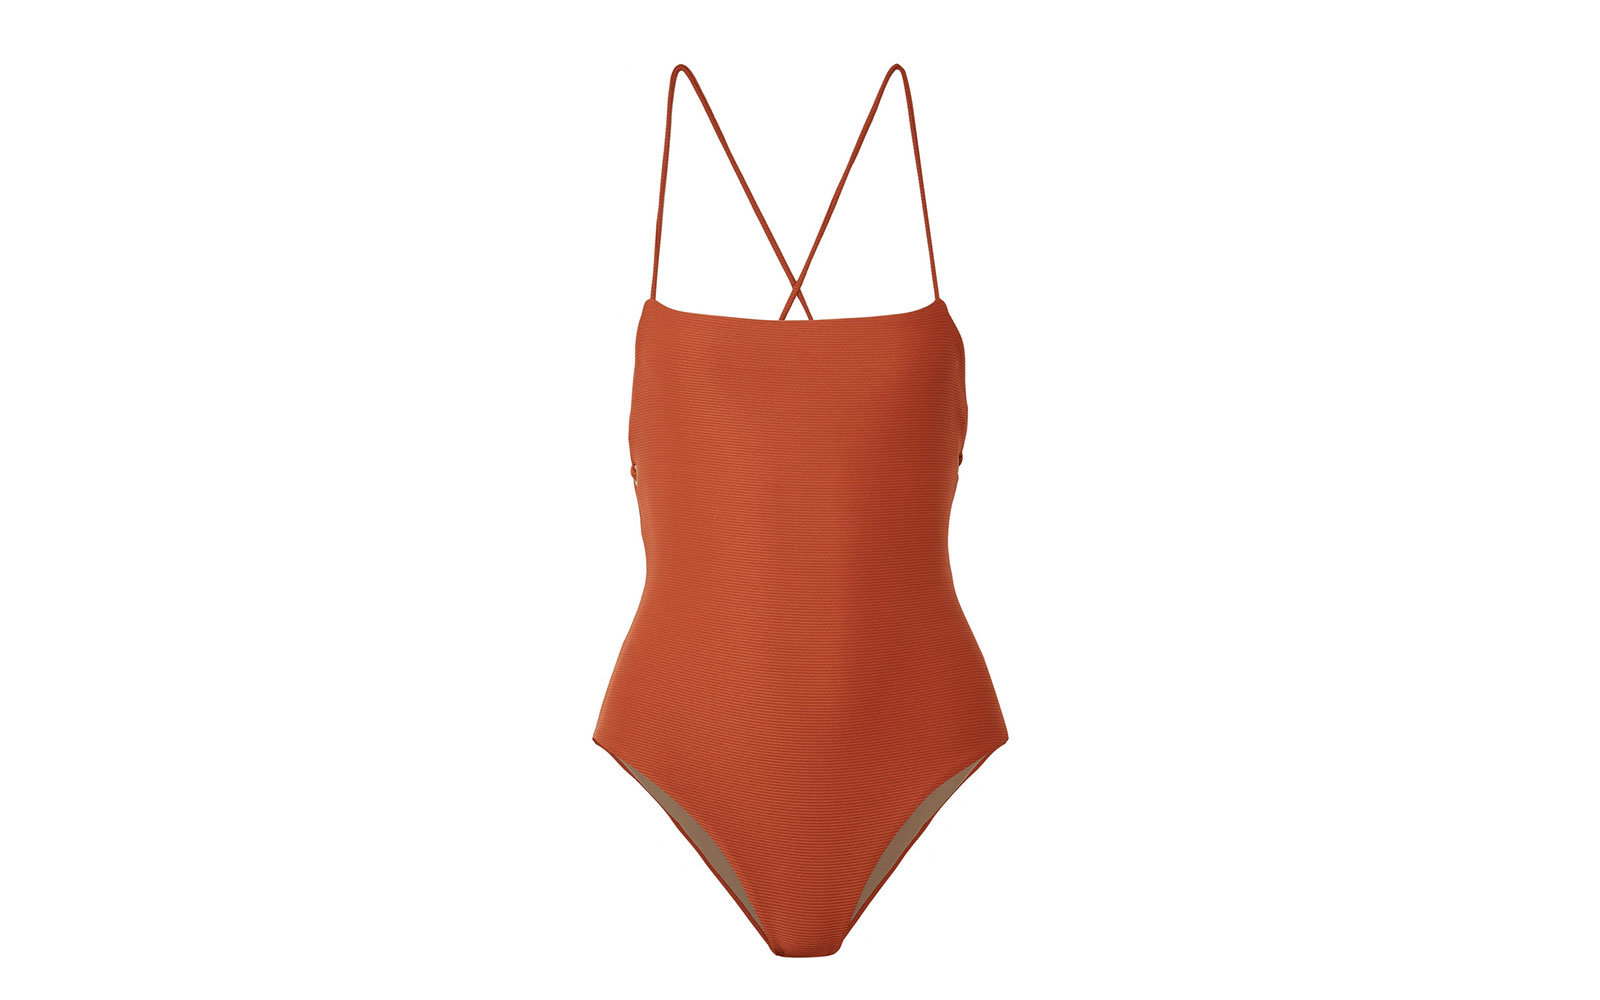 Mara Hoffman swimsuit